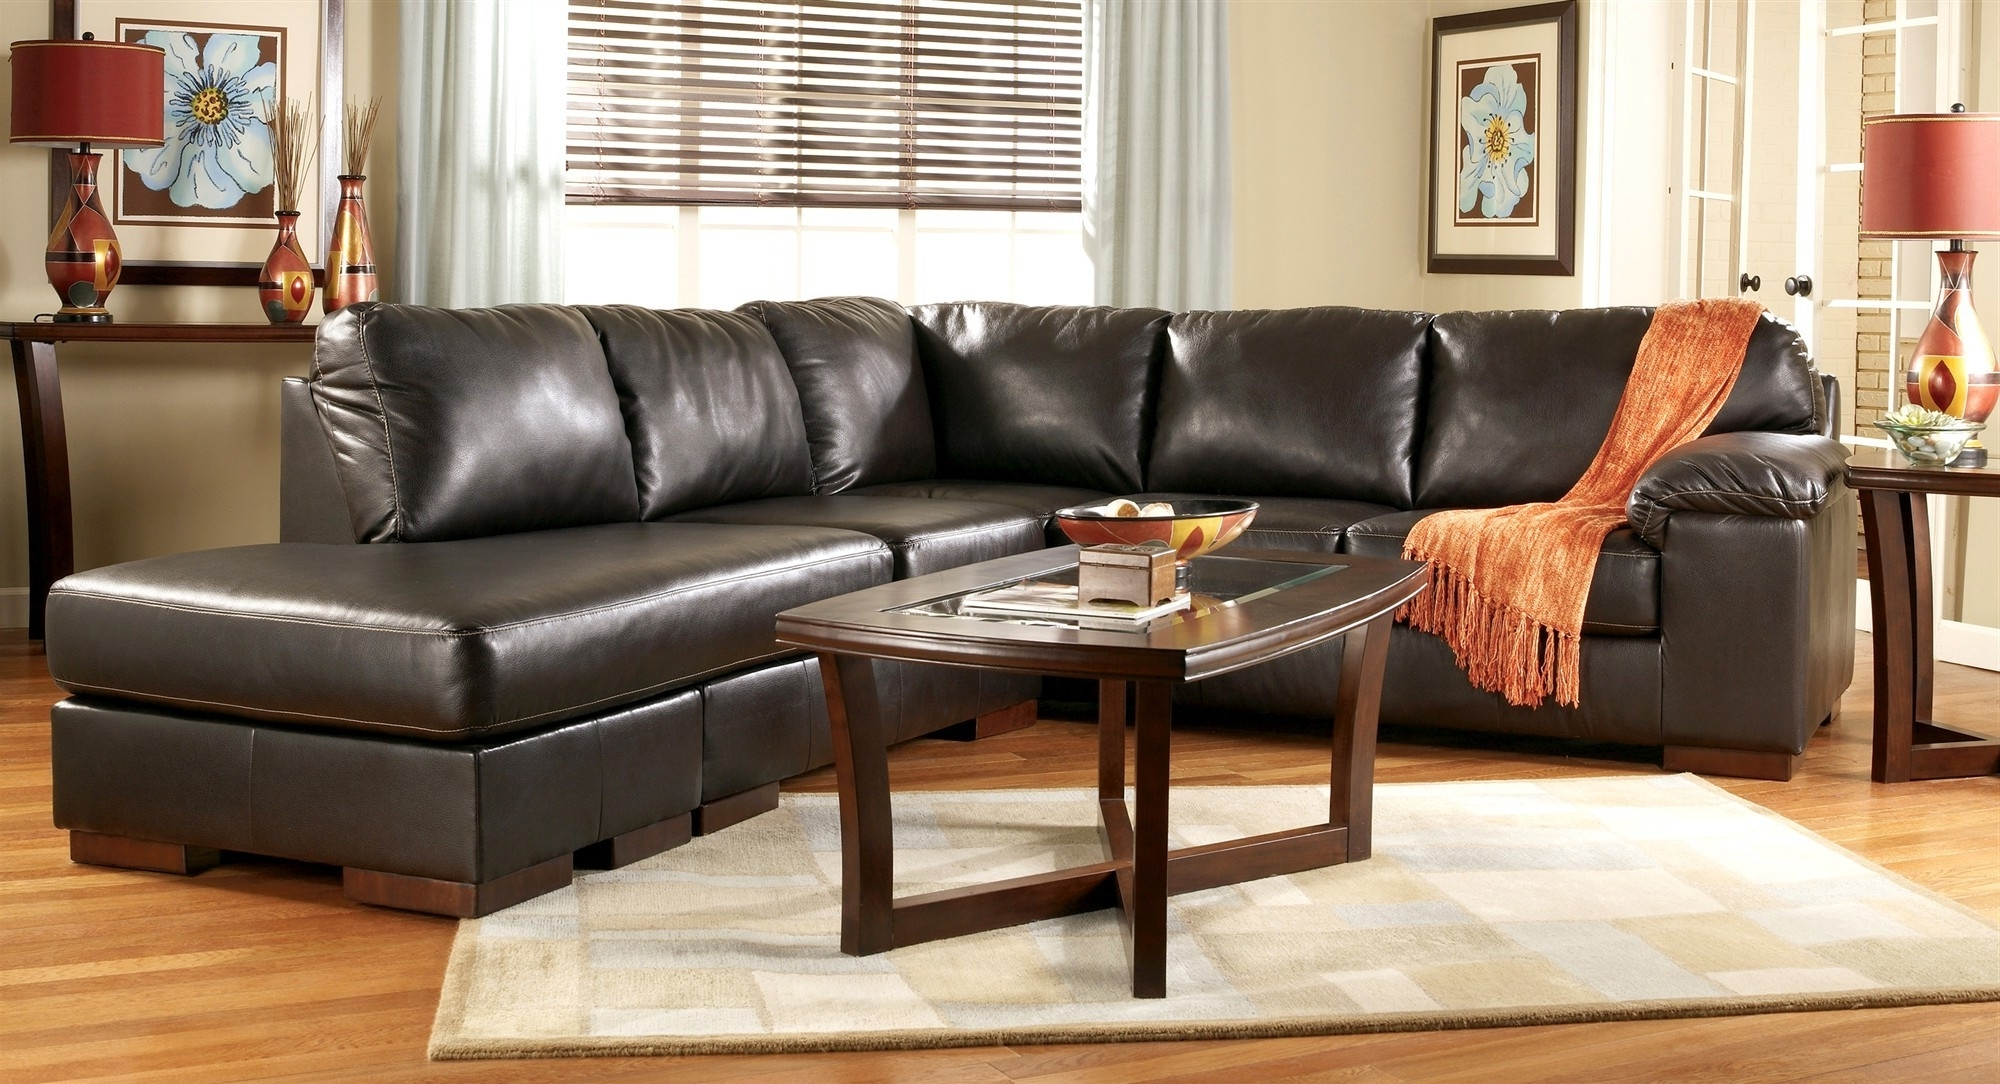 Faux Leather Sectional Sofas Best Of Fancy Green Sectional Sofa Within Popular Green Sectional Sofas With Chaise (View 3 of 20)